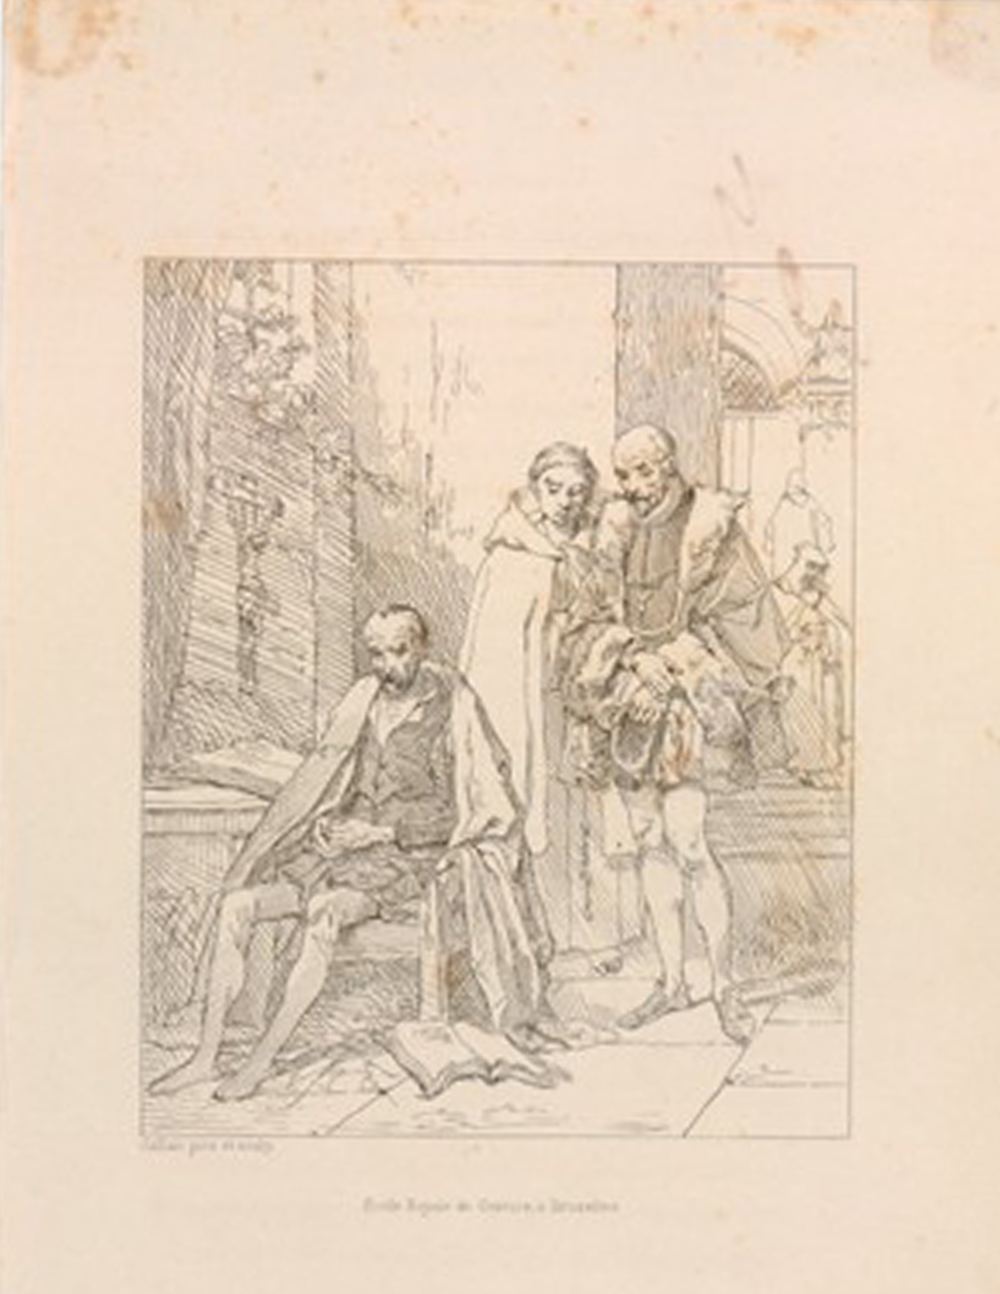 Louis Gallait, École Royale de Gravure à Bruxelles,  Le Tasse en prison, ou Montaigne visitant le Tasse  (1836). Print.  Courtesy of The British Museum  Appears:  Writing